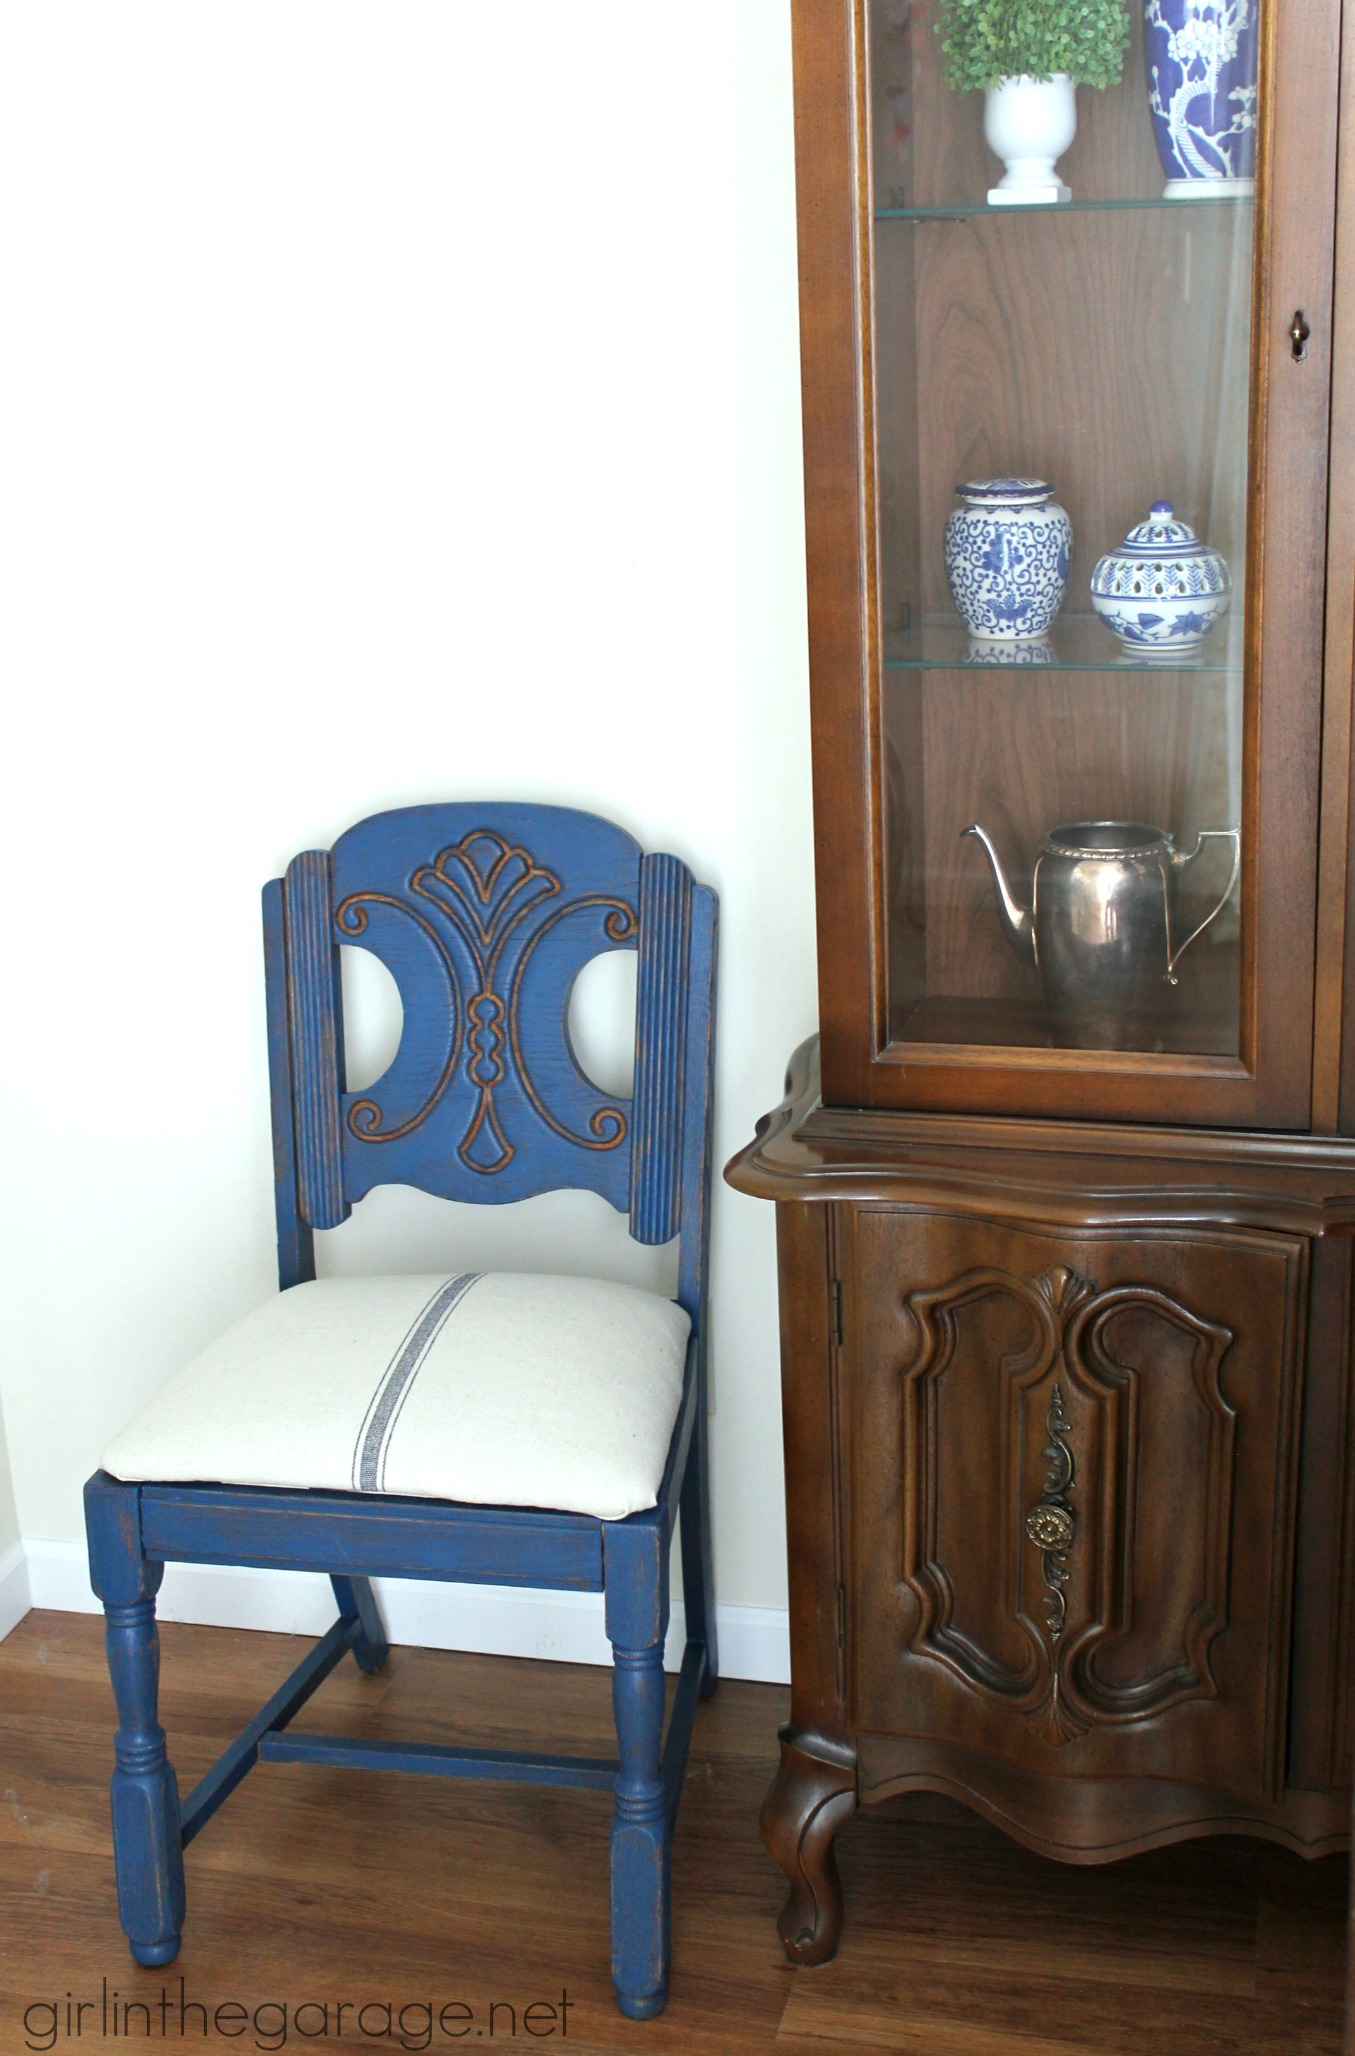 see how an outdated vintage chair got a french country chic makeover with new paint and